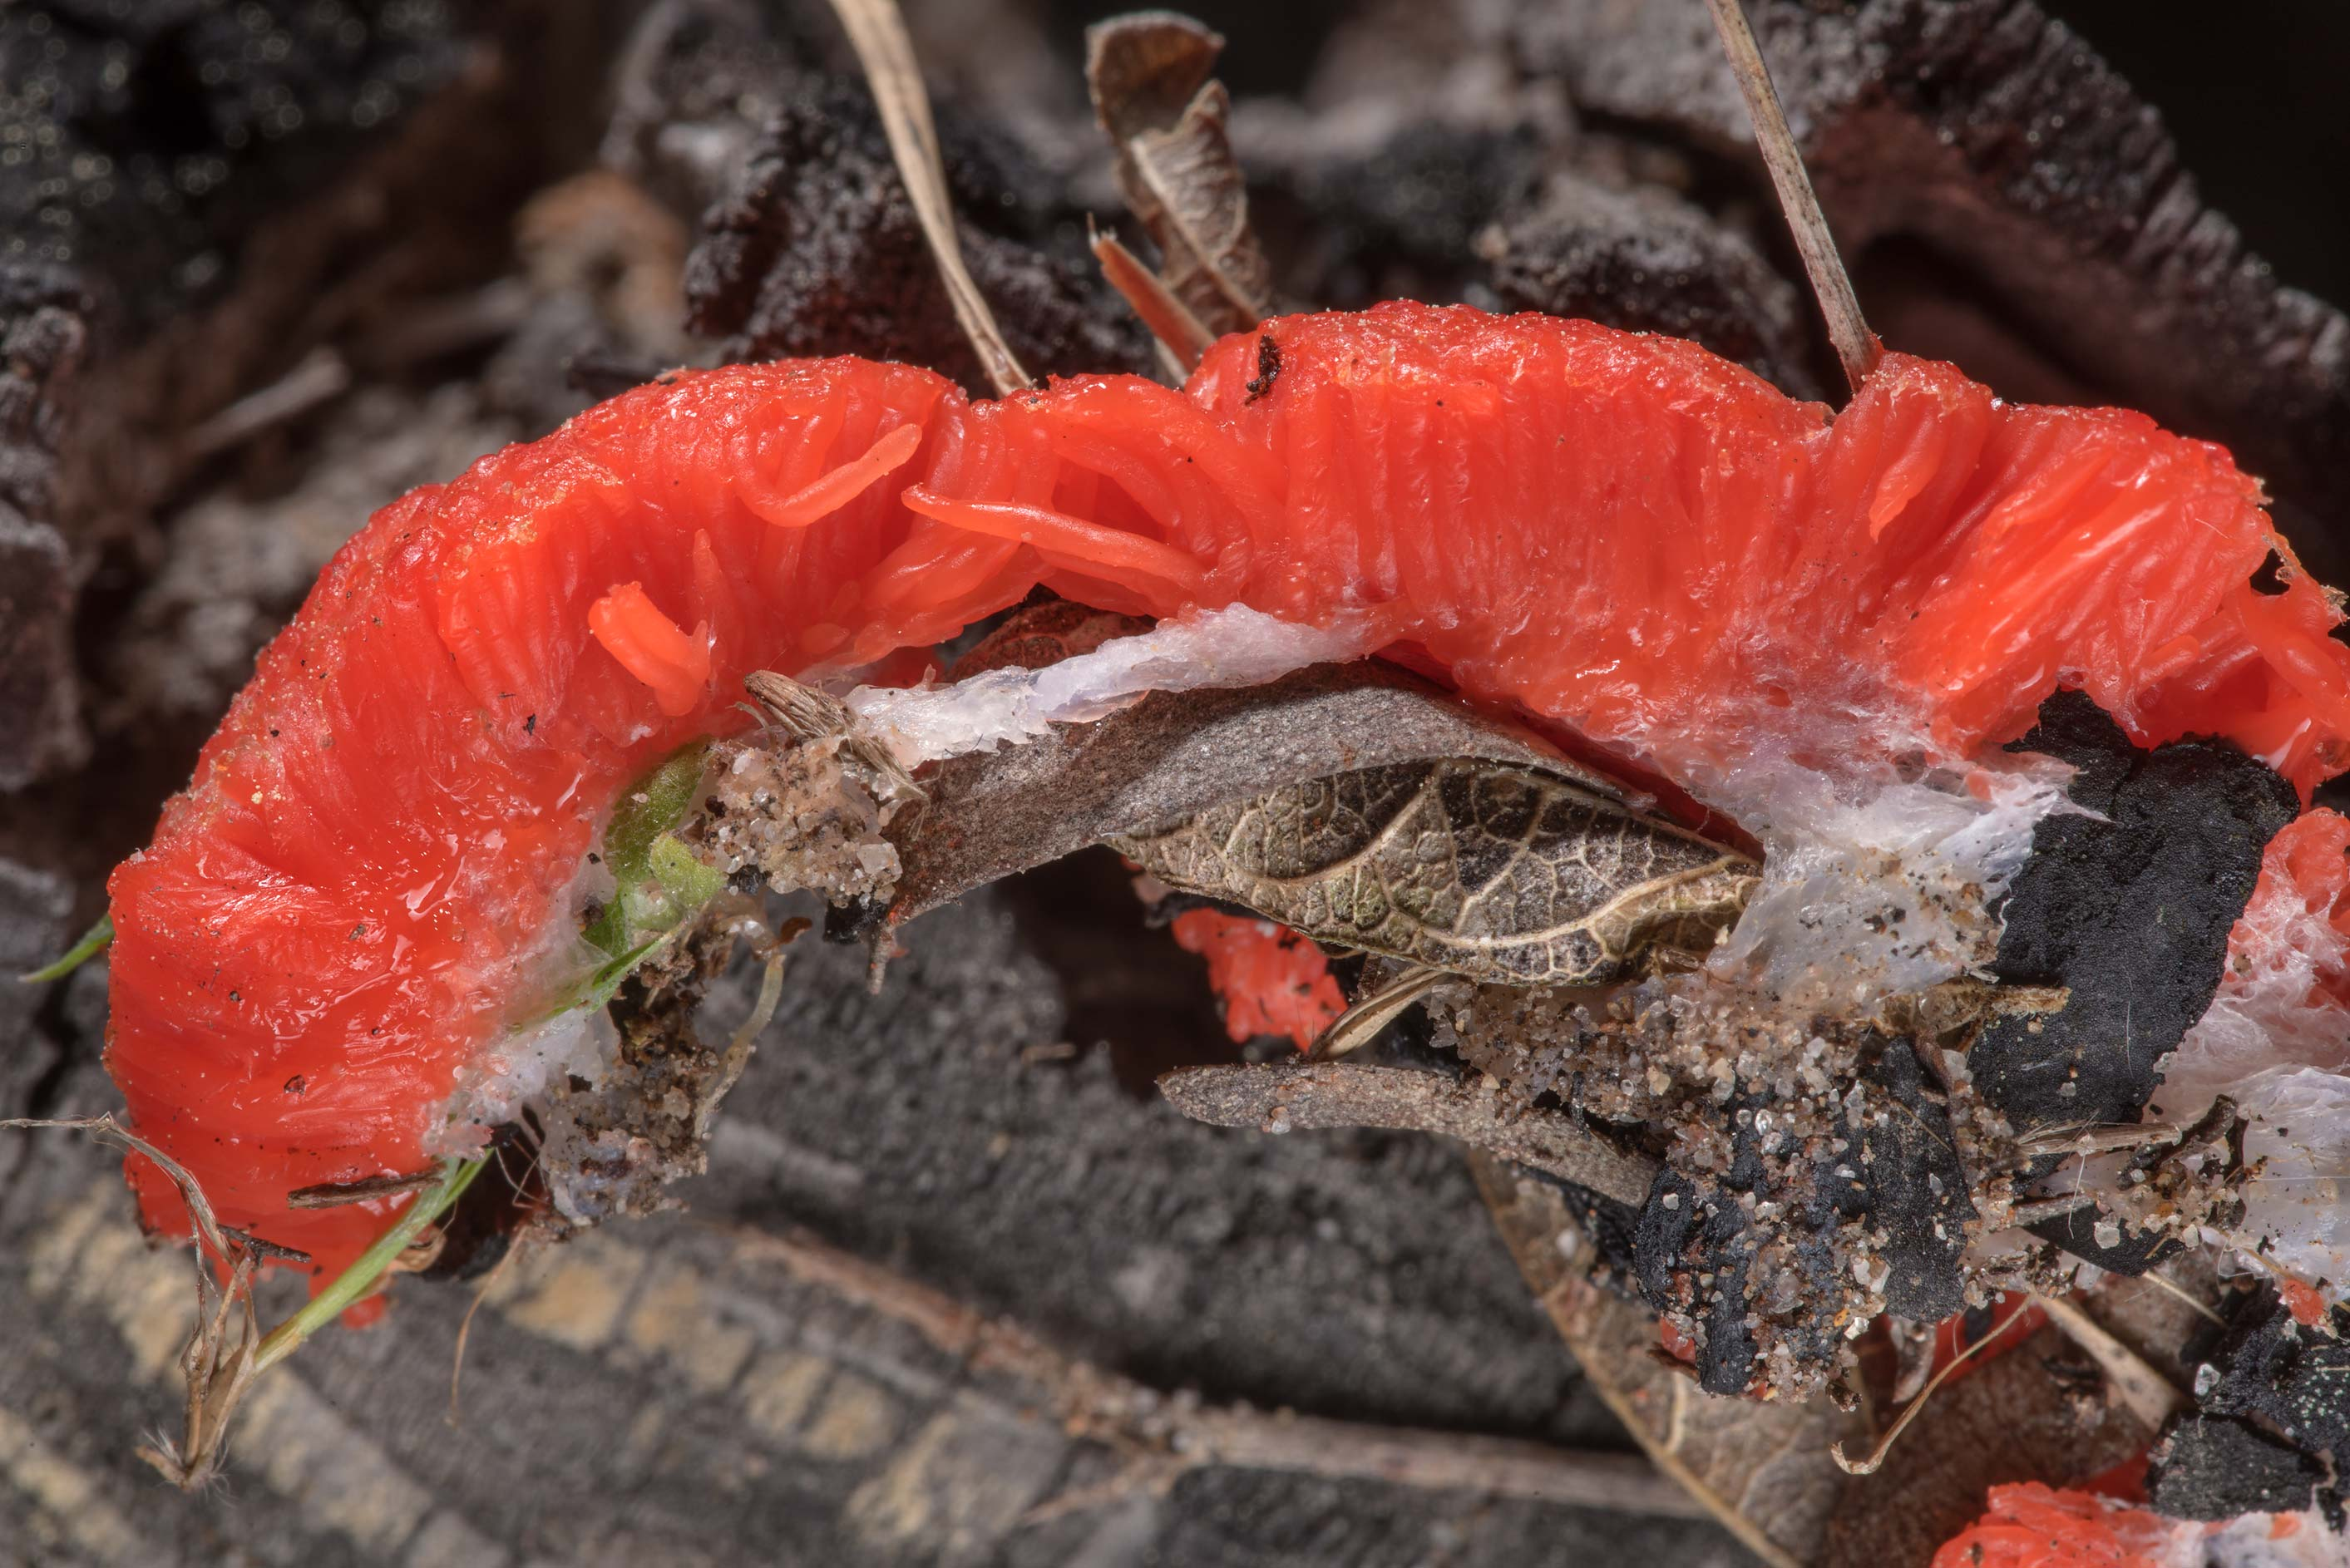 Dissected raspberry slime mold (Tubifera...in Bastrop State Park. Bastrop, Texas